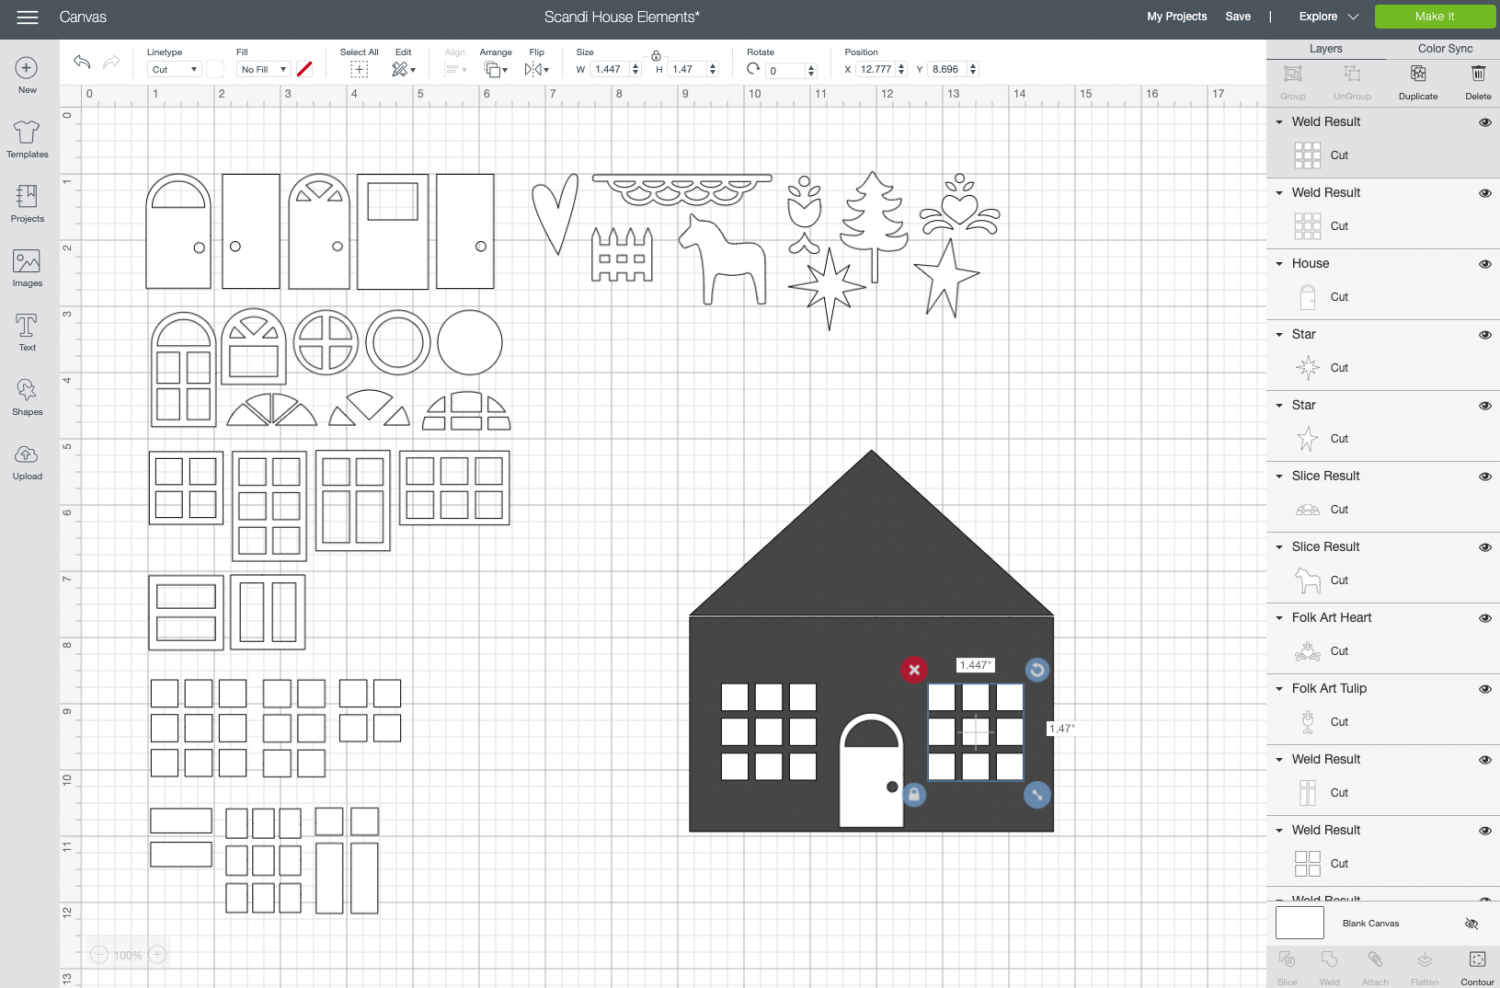 Cricut Design Space: Add elements to the house template